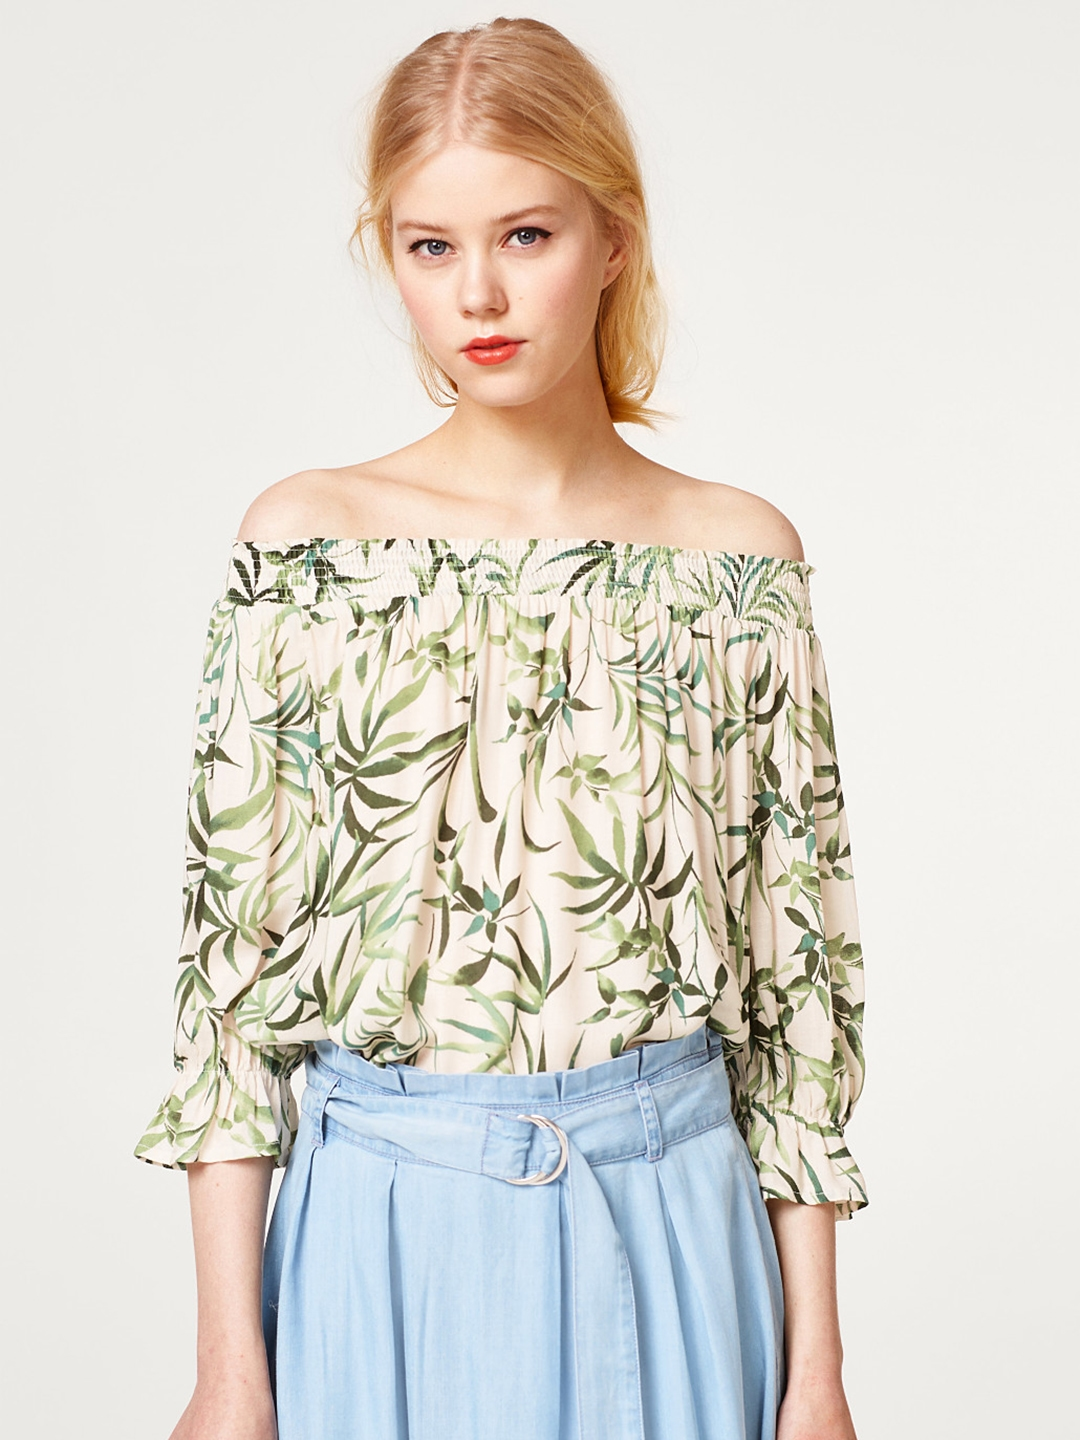 7af77abf5b6e90 Buy ESPRIT Women Off White   Green Printed Bardot Top - Tops for ...